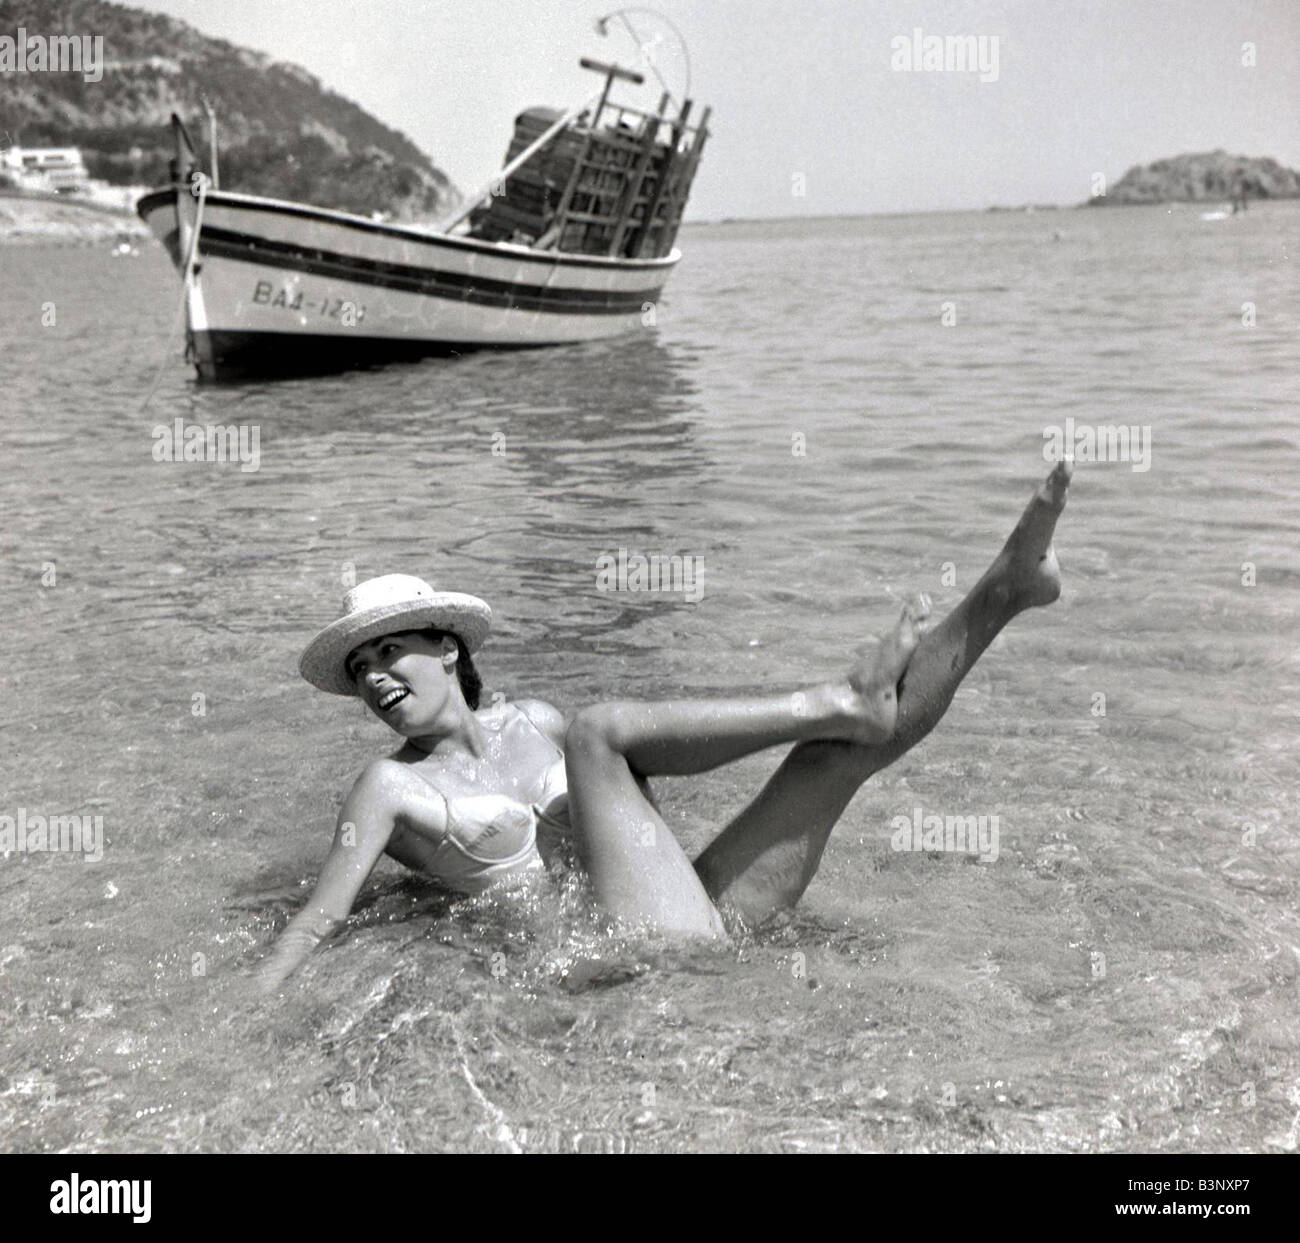 British People Abroard June 1965 British Holiday Makers in Spain 1960s - Stock Image